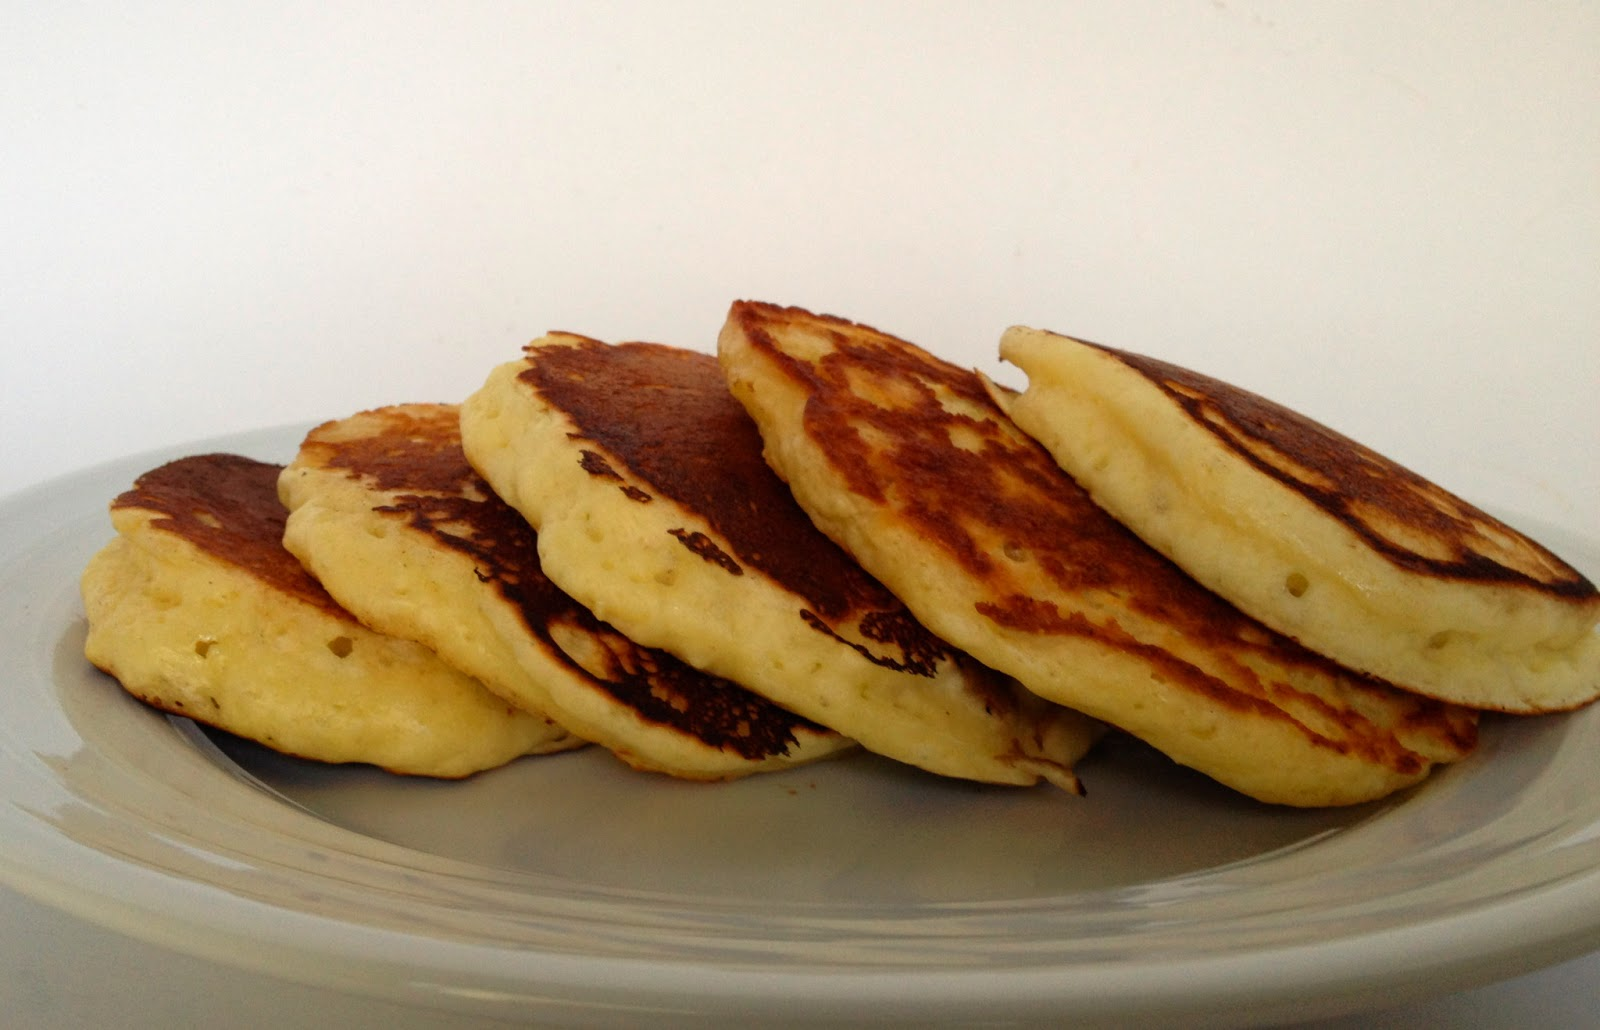 The Boozy Epicure: Sunday Morning Pancakes for Two